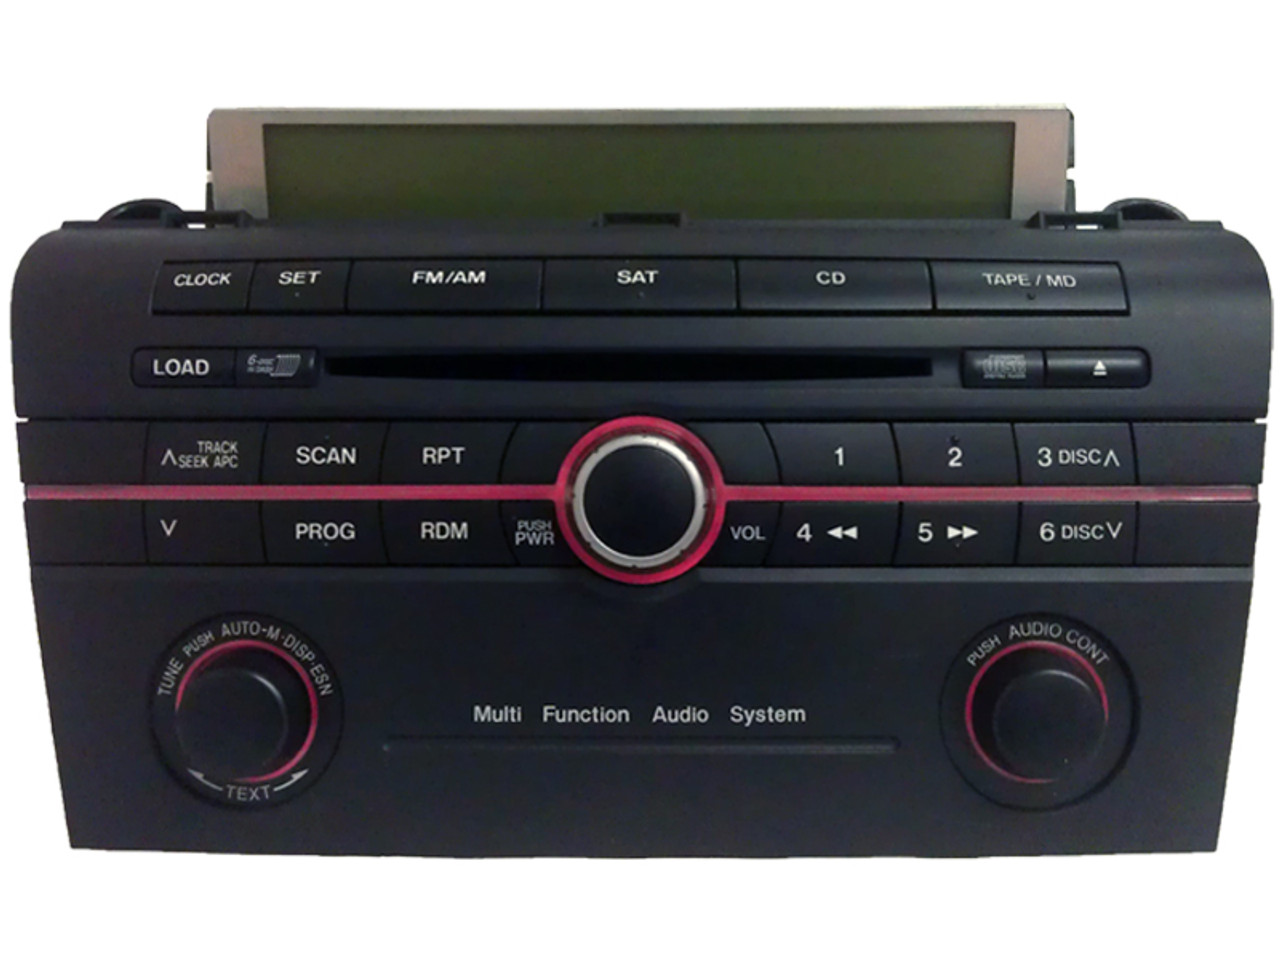 MAZDA 3 Radio Stereo 6 Disc Changer CD Player w/ Trip Display Black Sat  2005 2006 2007 2008 05 06 07 08